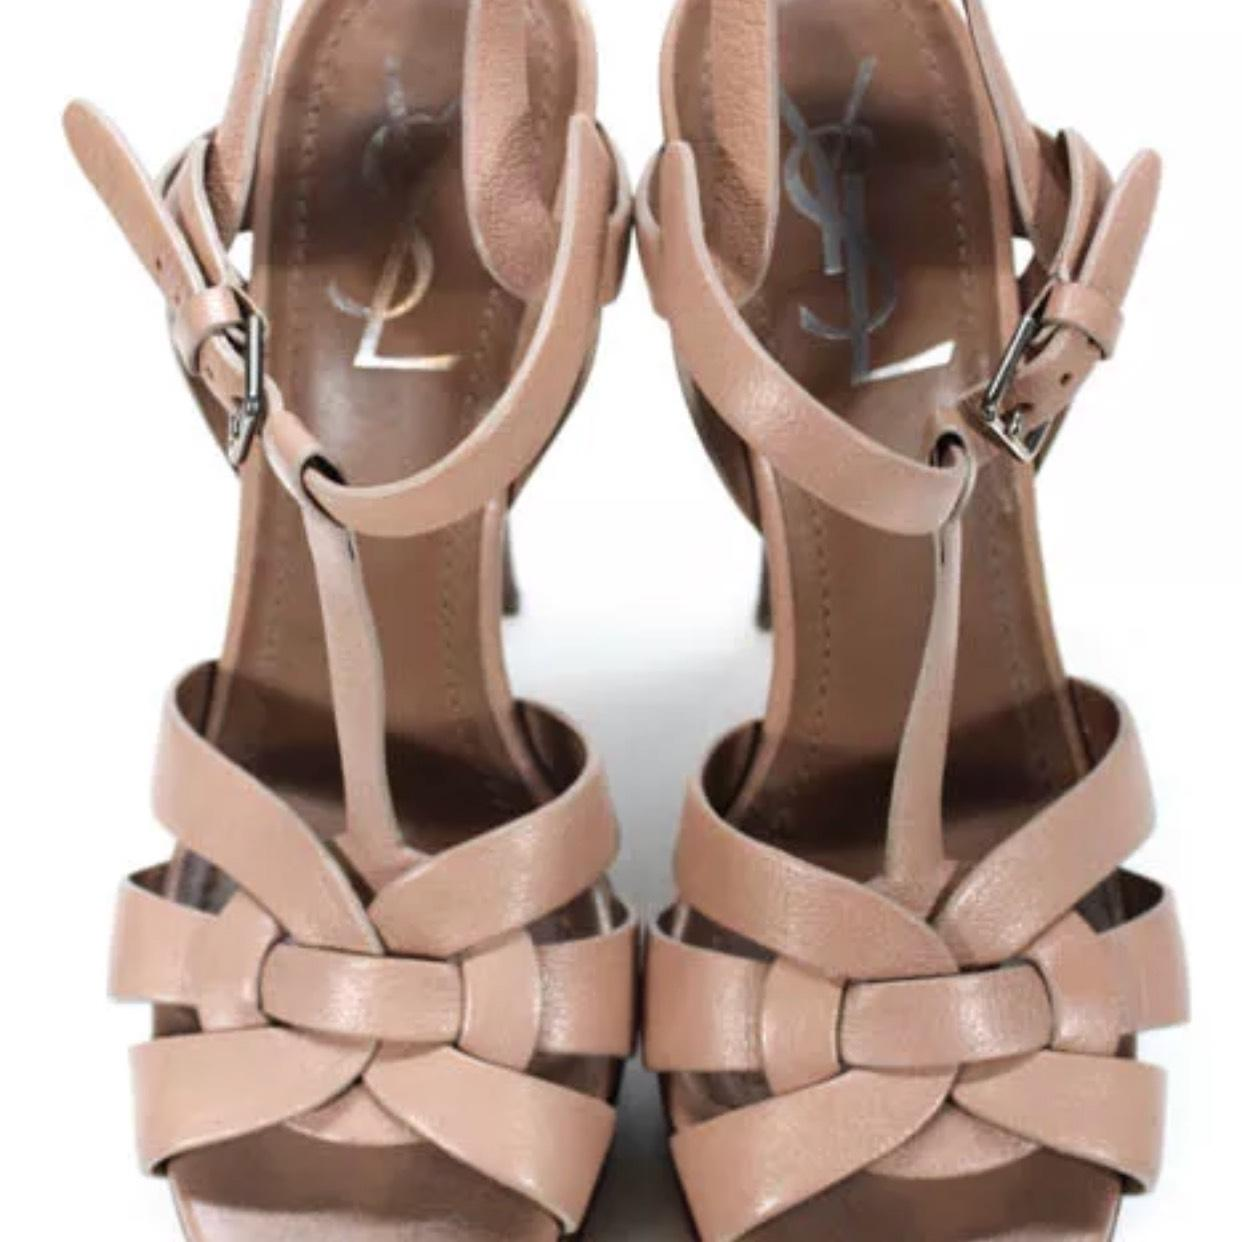 21d085508a3 Saint Laurent Beige Tribute Platforms Size US 7.5 7.5 7.5 Regular (M ...